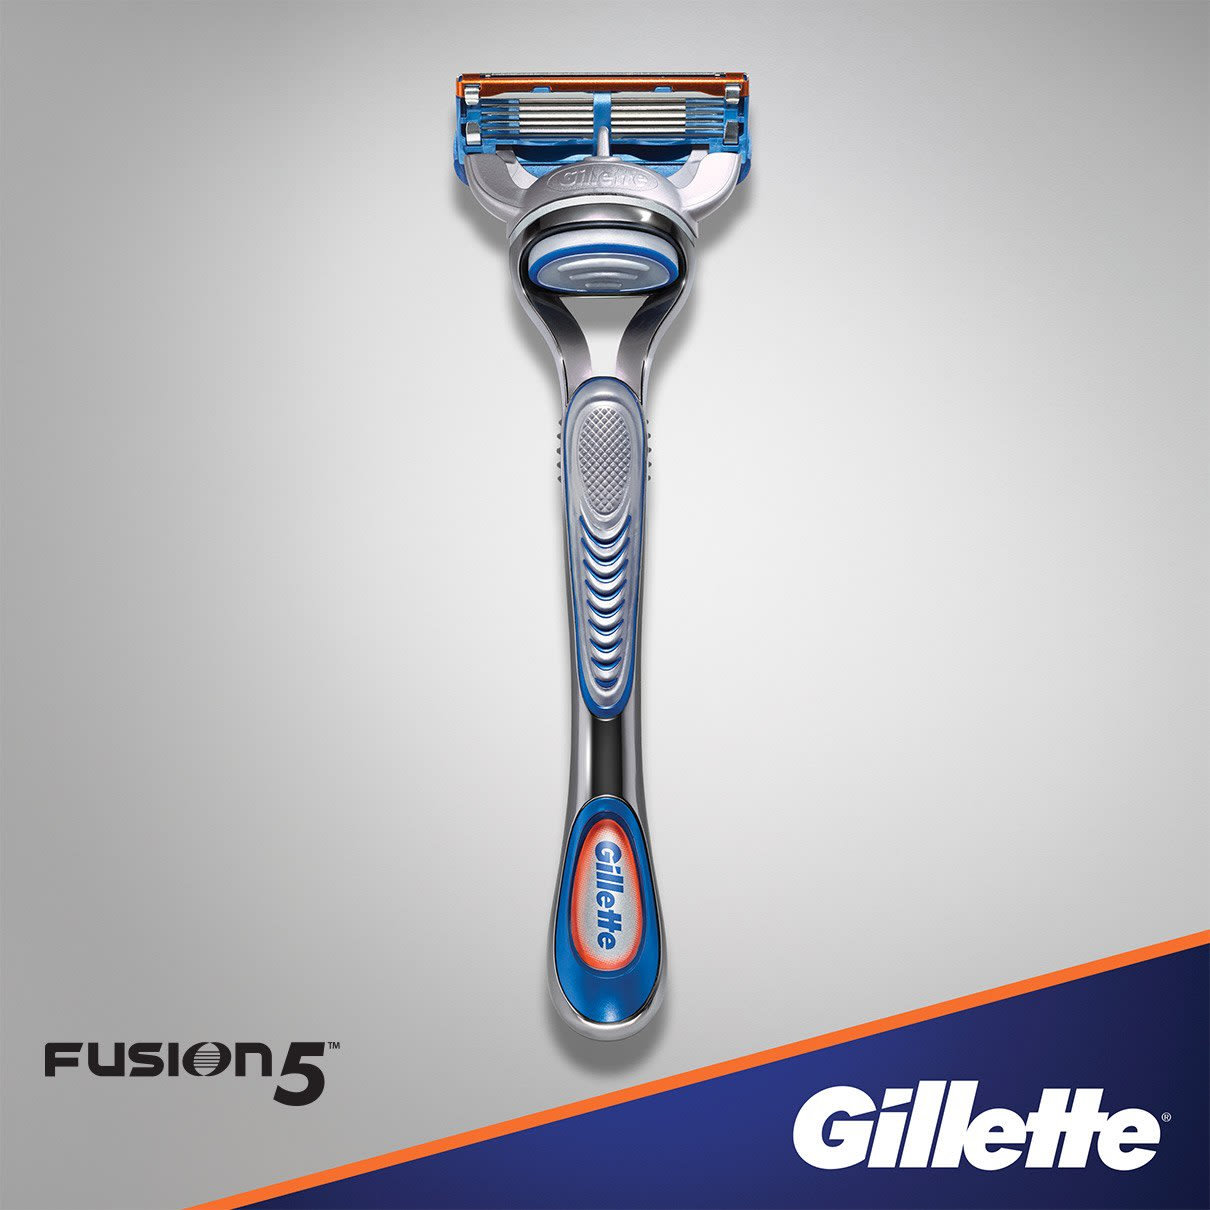 Gillette® Fusion5™ Manual Razor